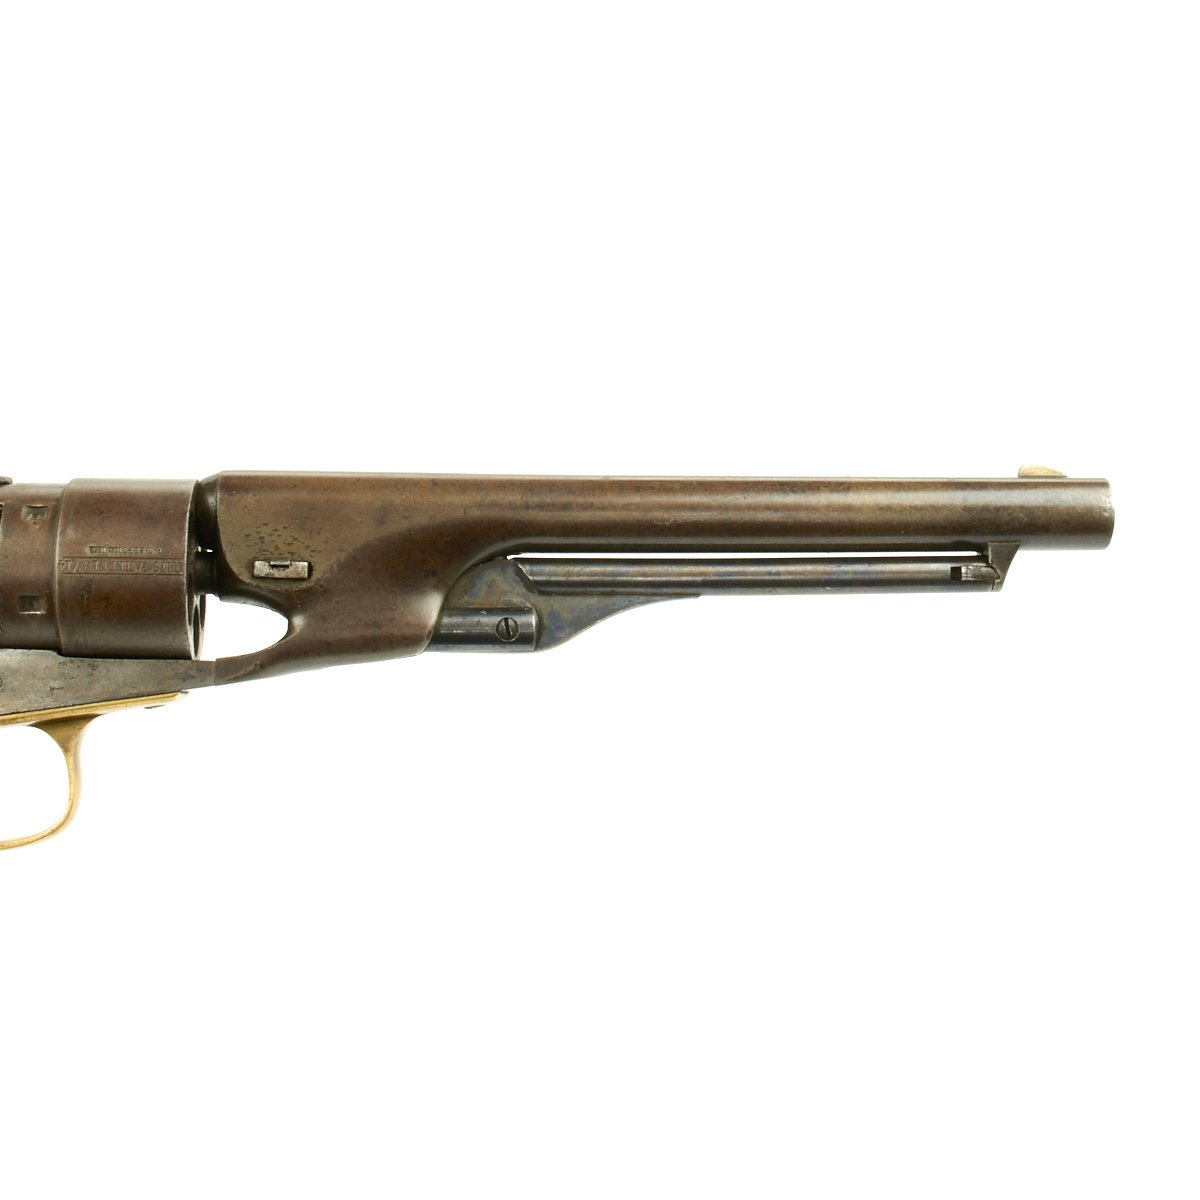 Florida Confederate Image additionally 9443 moreover 128621 C 1861 Colt 1860 Army Revolver further 1861 Navy moreover Colts Patent Bullet Mold Colt 1860 Army Revolver Civil War 44 Caliber Conical Ball. on colt model 1860 army revolver civil war era